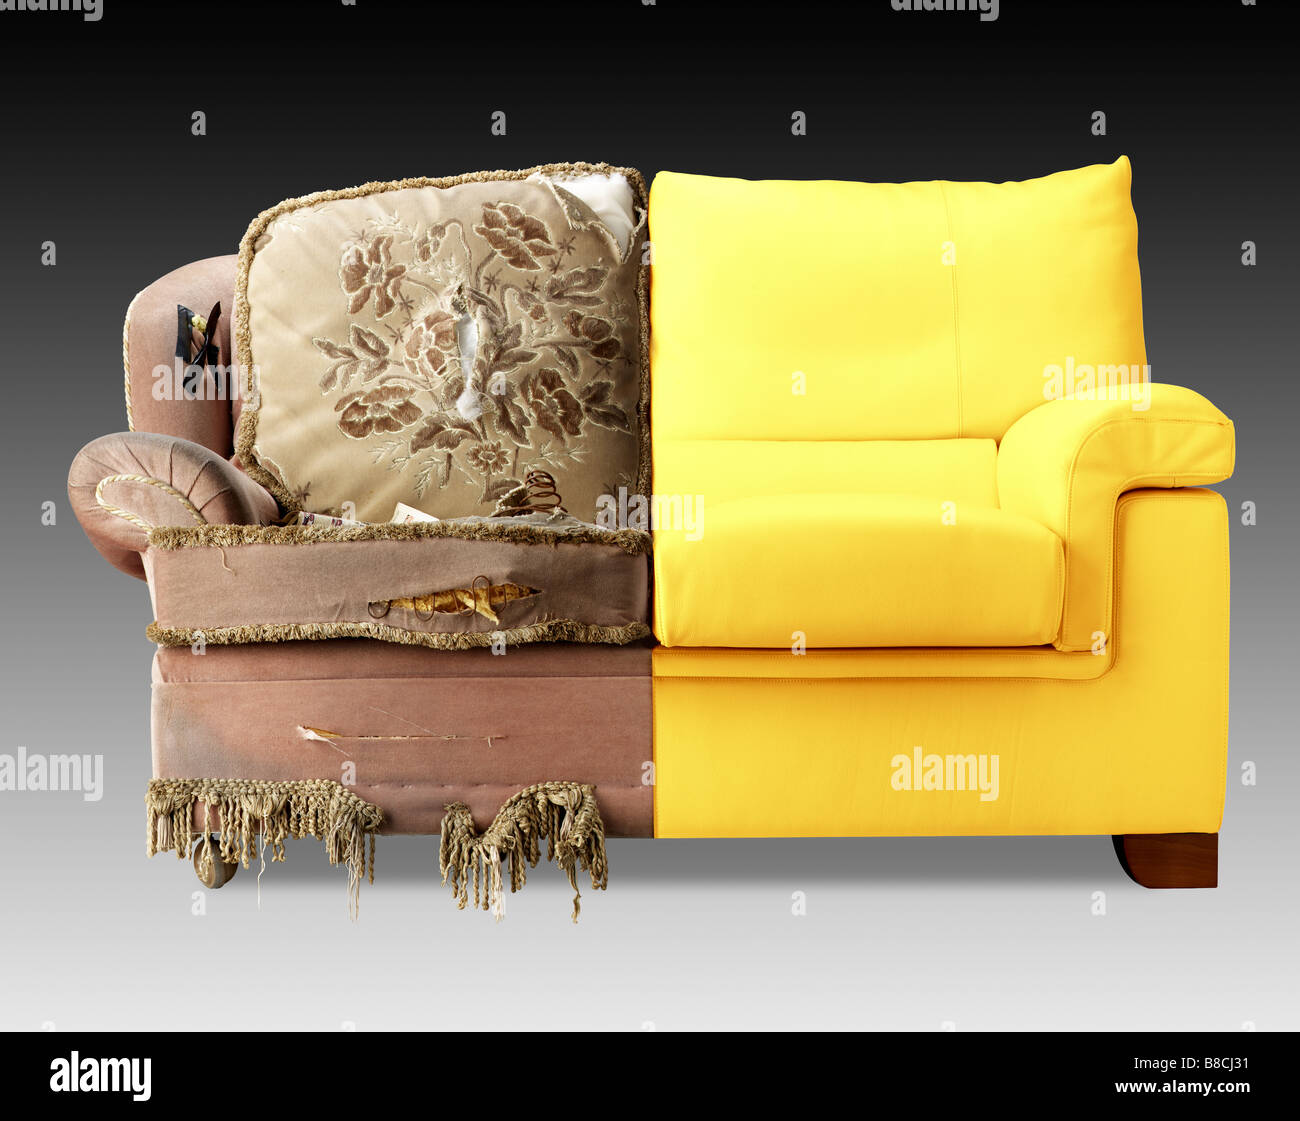 Sofa half new half old - Stock Image